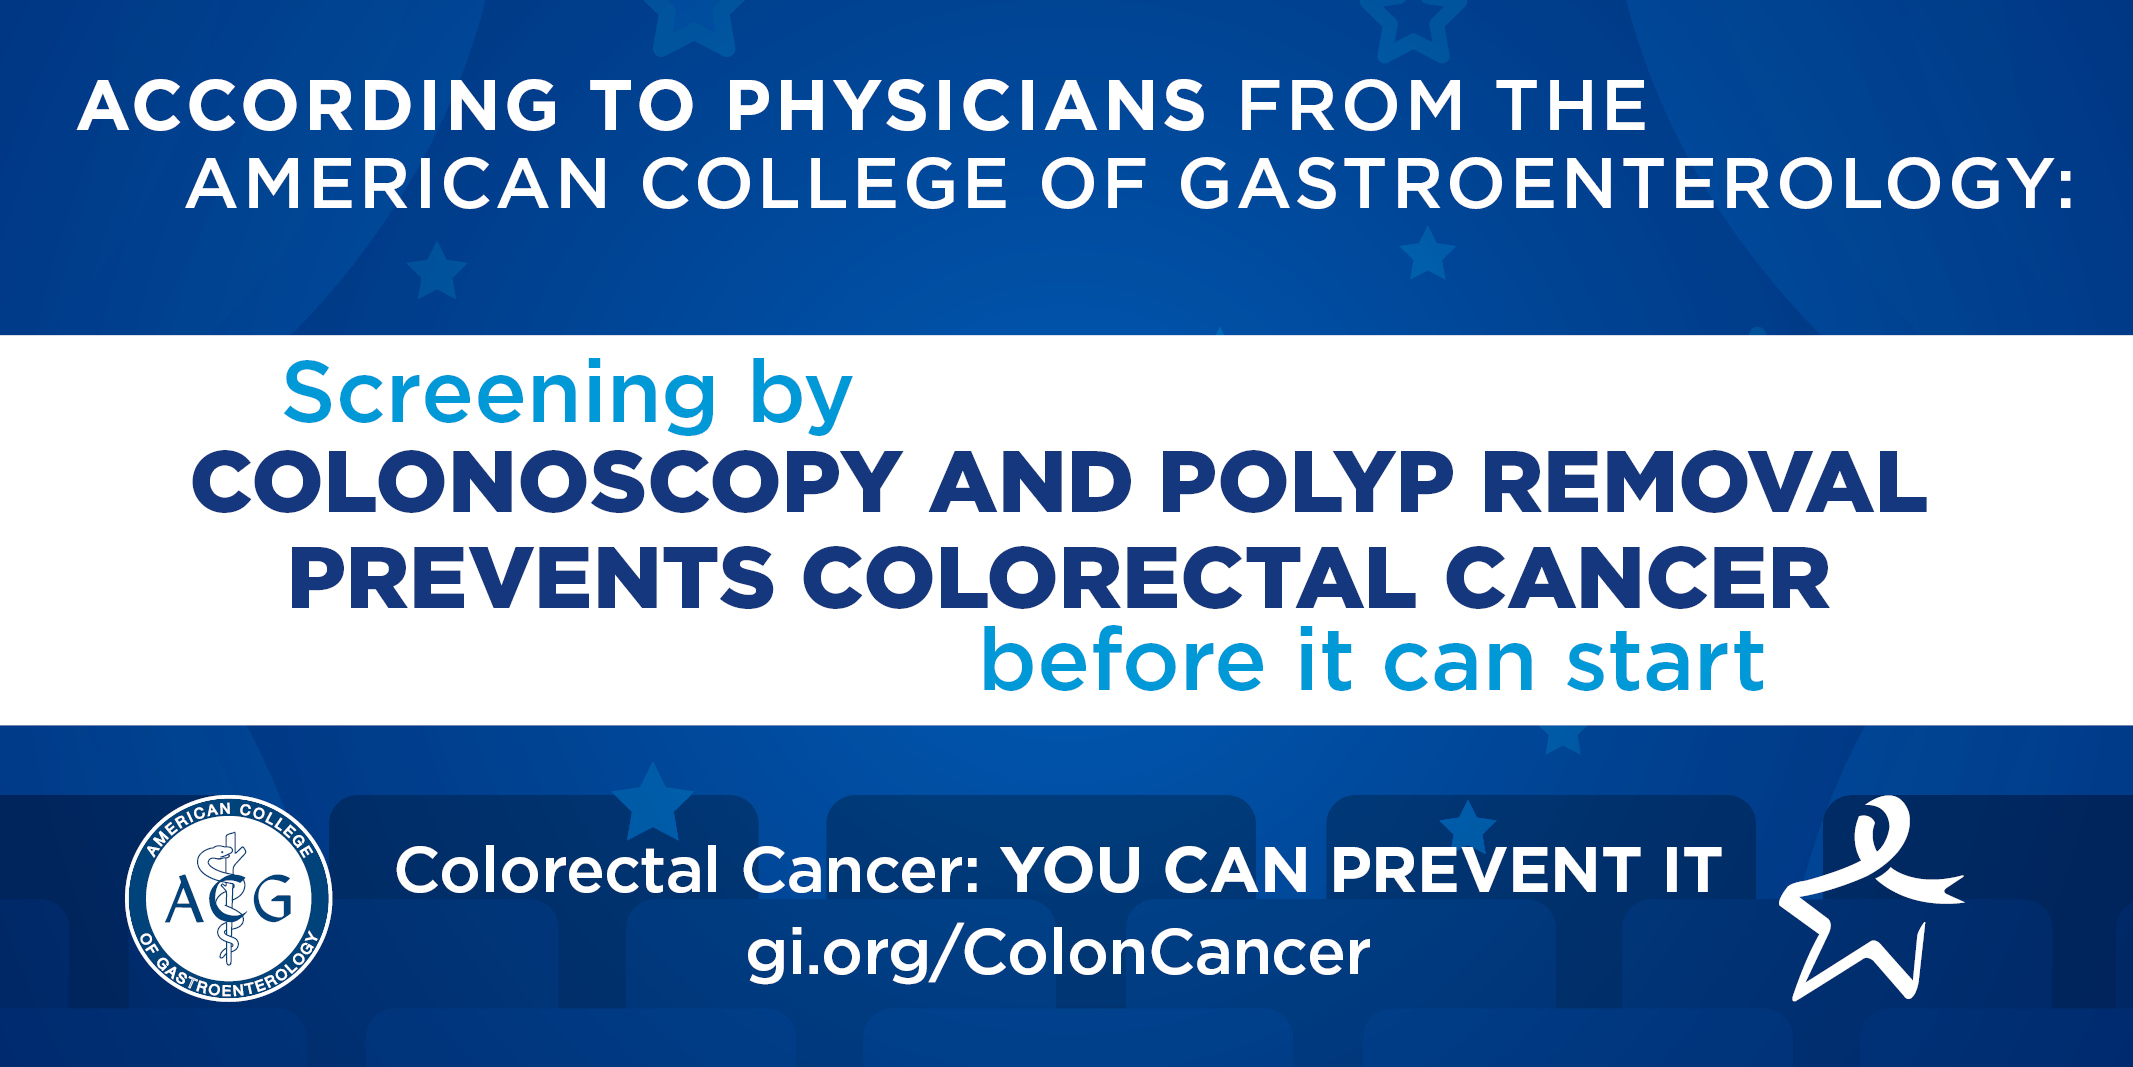 Polyp Removal Prevents CRC